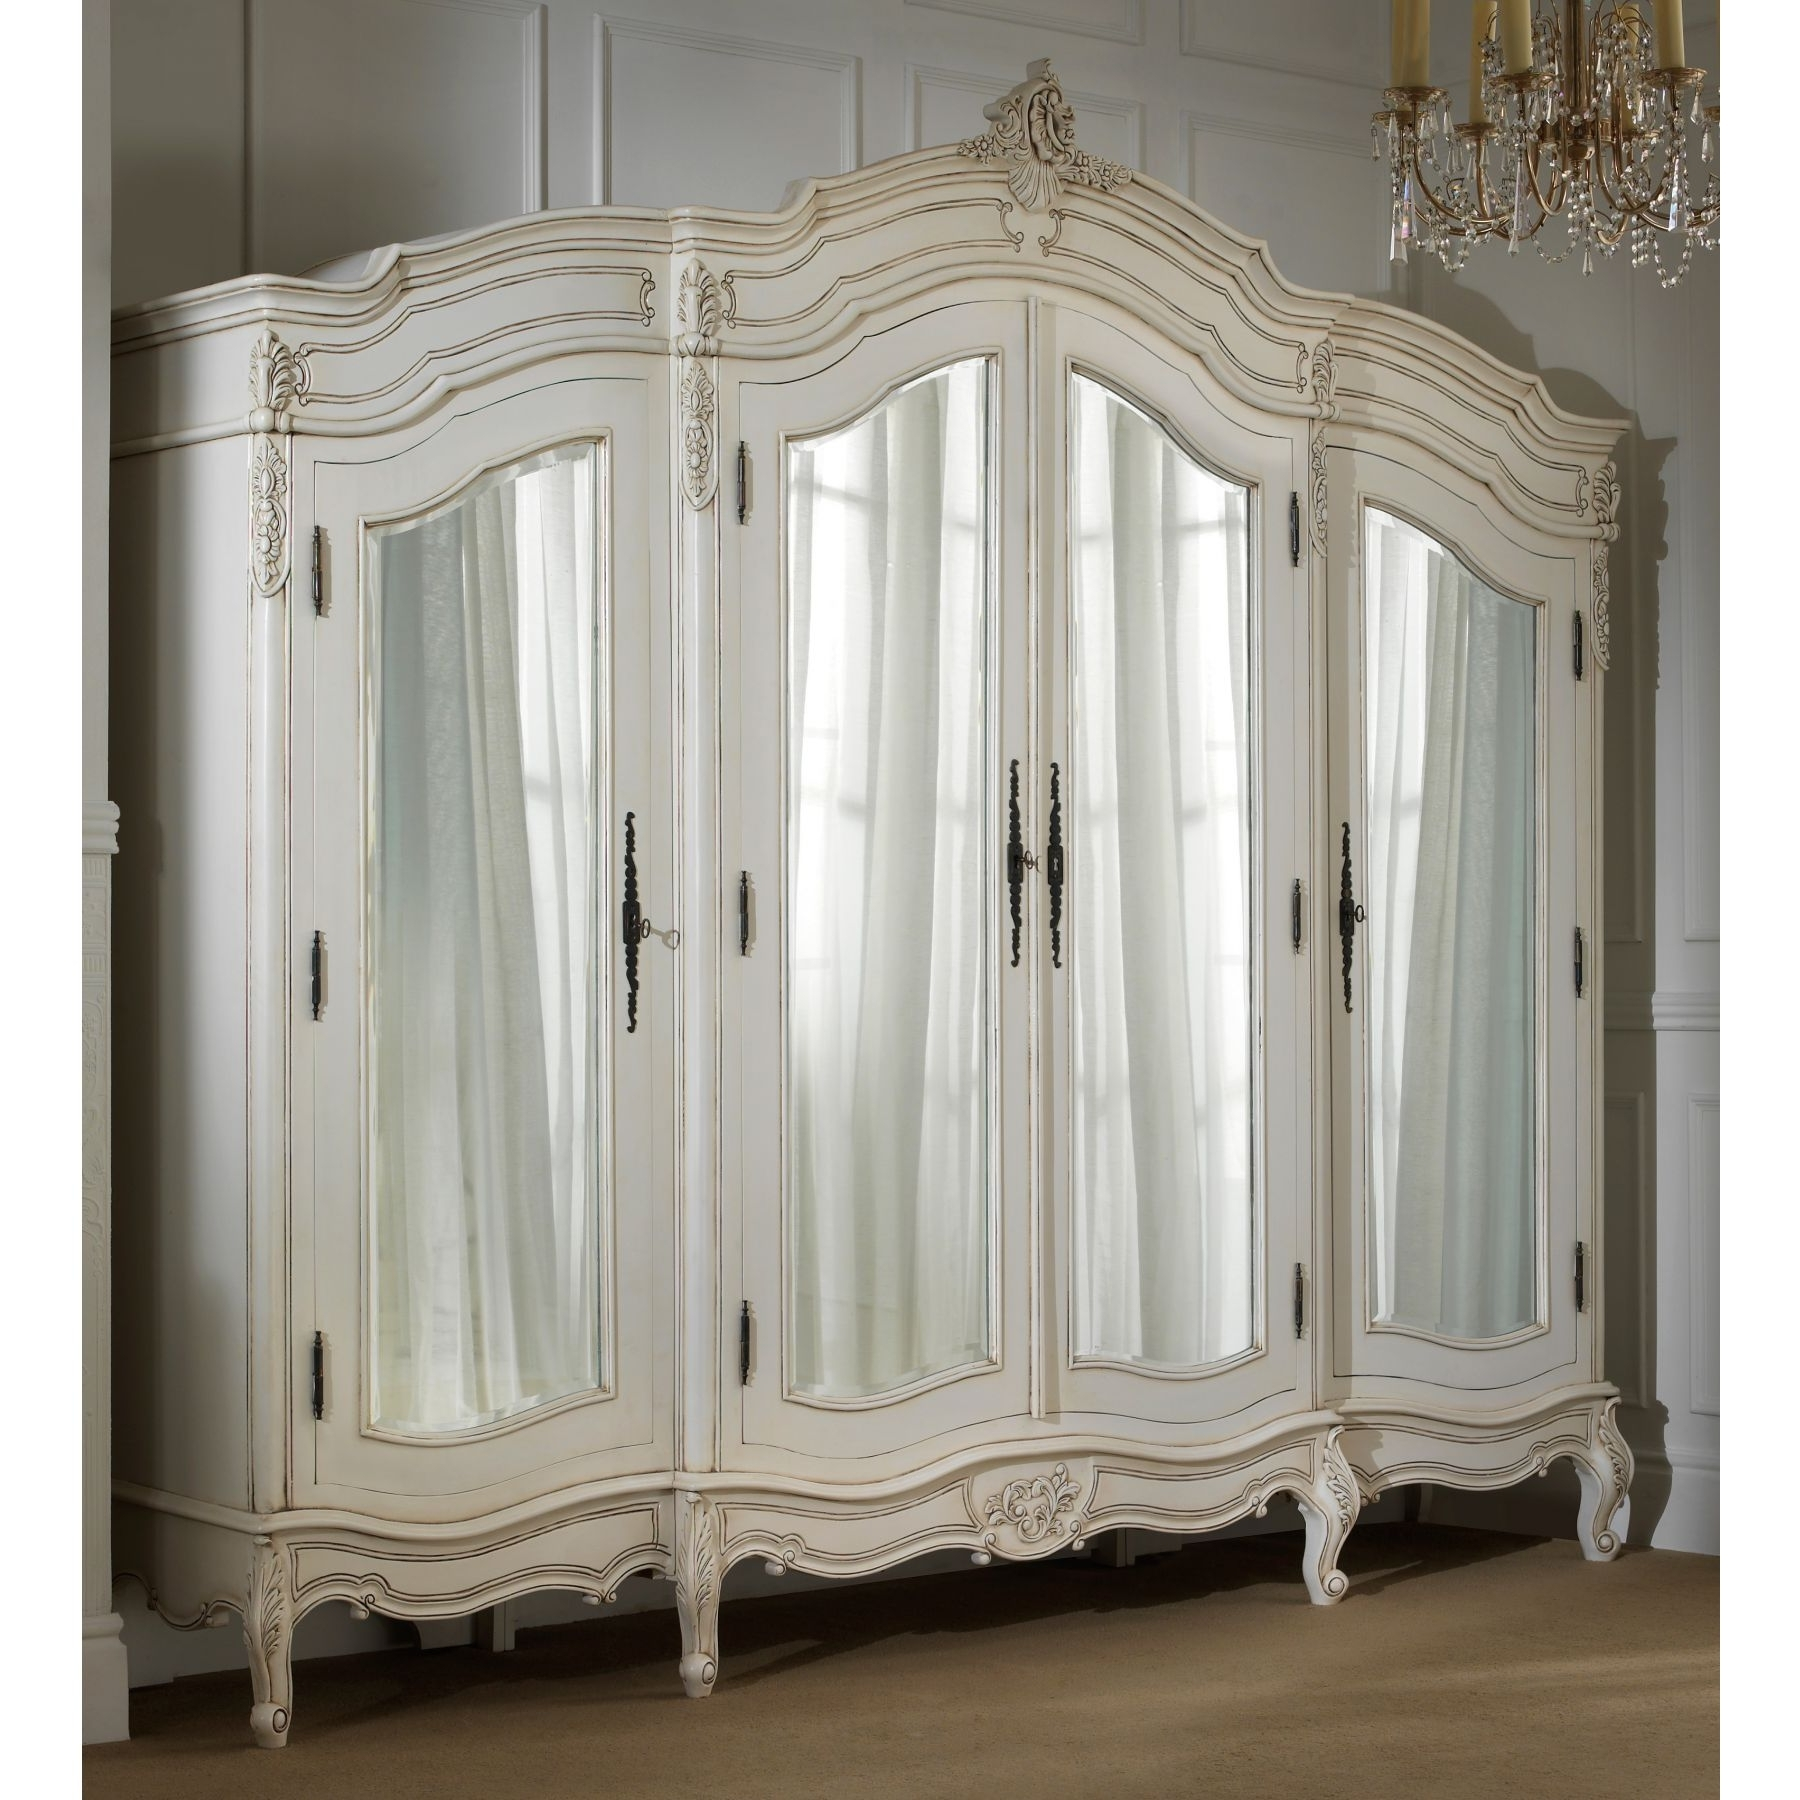 2018 Furniture: Exciting Armoire Wardrobe For Interior Storage Design Within Antique White Wardrobes (View 12 of 15)